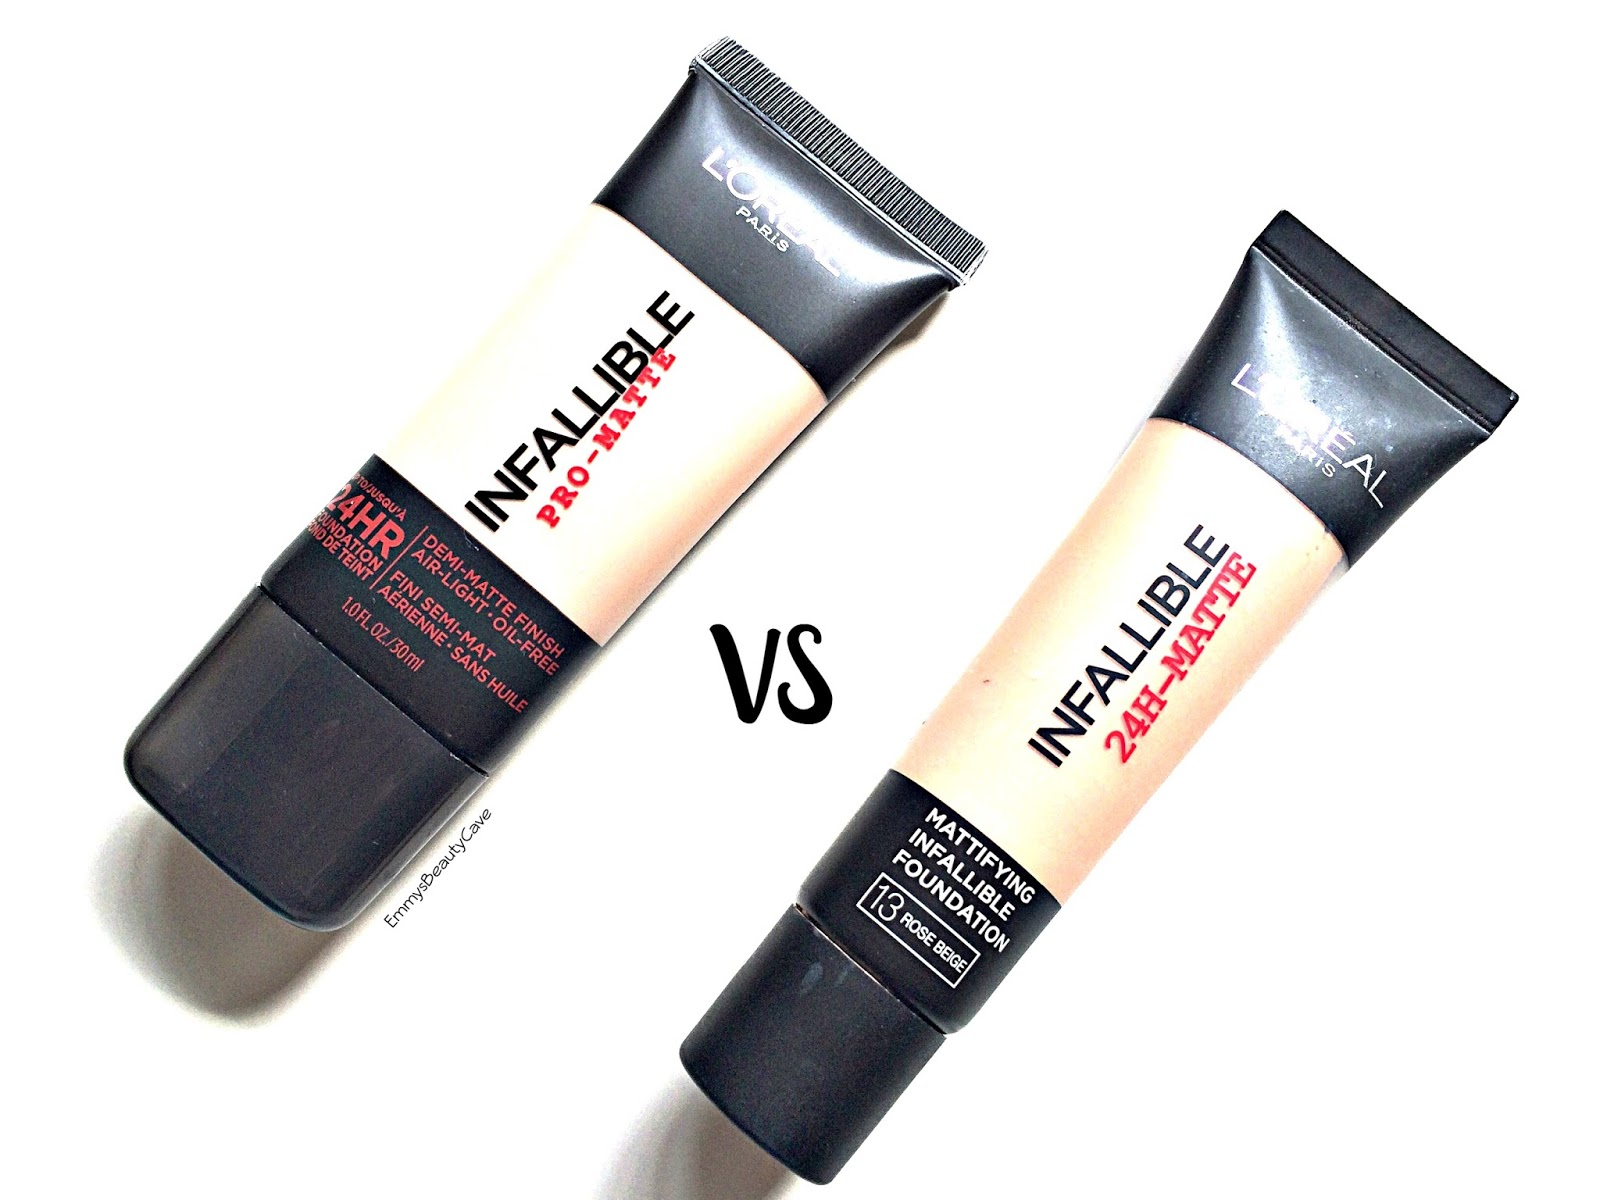 Loreal Infallible Foundation Uk Vs Us Emmywritesabout Pro Matte 24hr Review